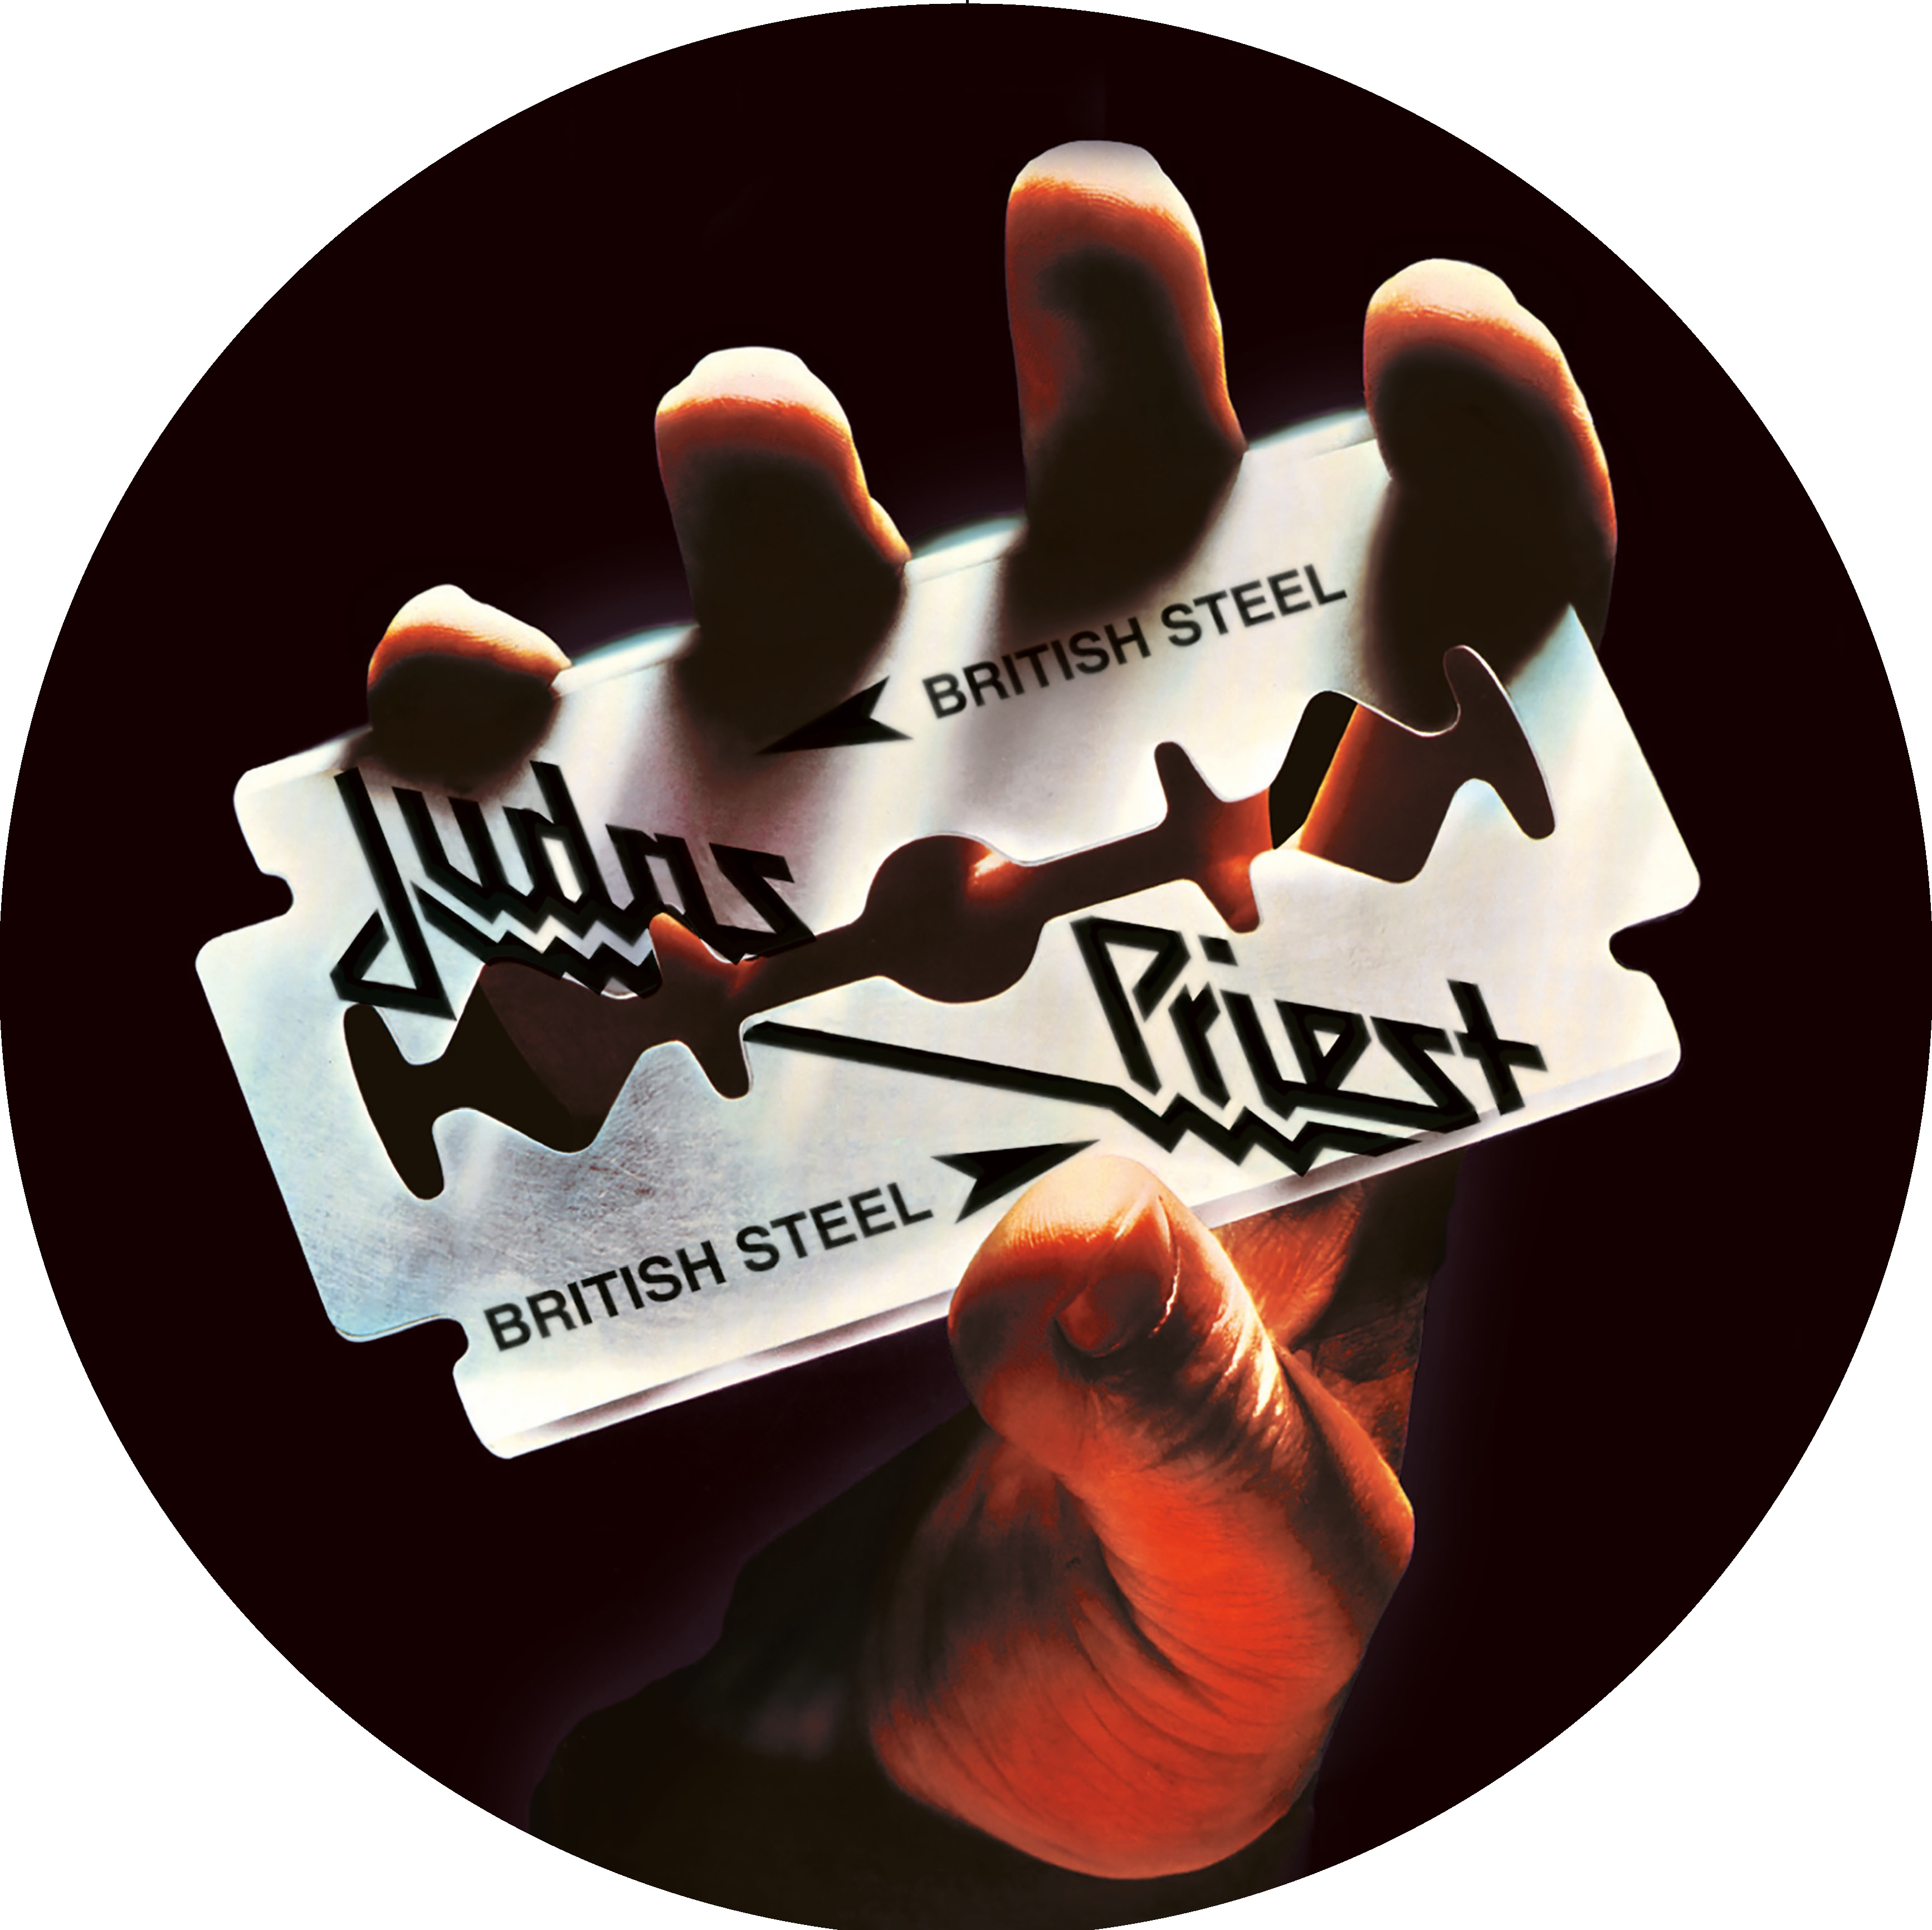 Judas Priest - British Steel: Limited Edition 40th Anniversary [RSD Drops Aug 2020]